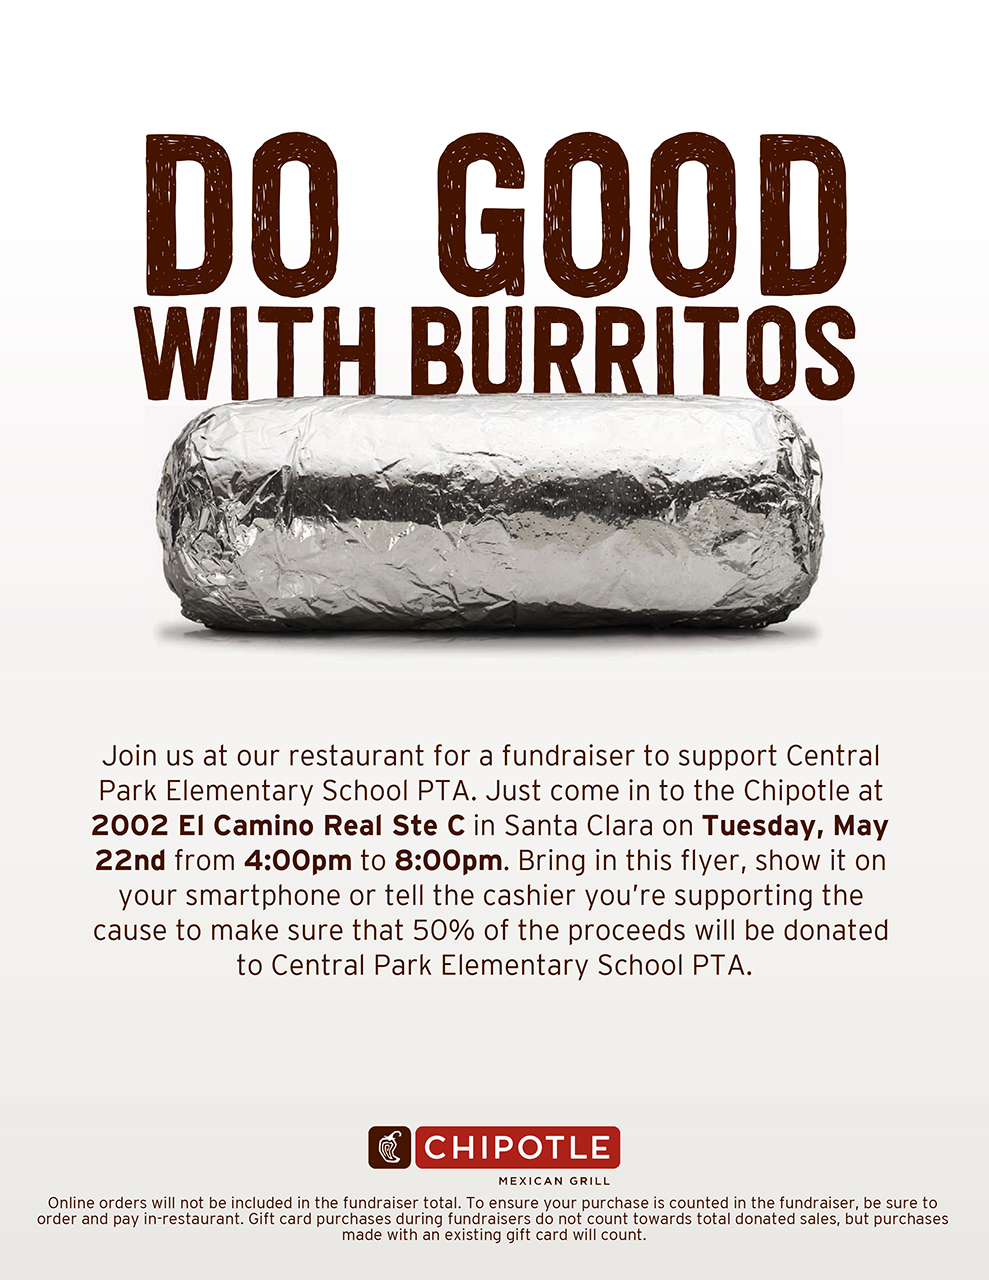 Chipotle Fundraiser Tuesday, May 22nd.